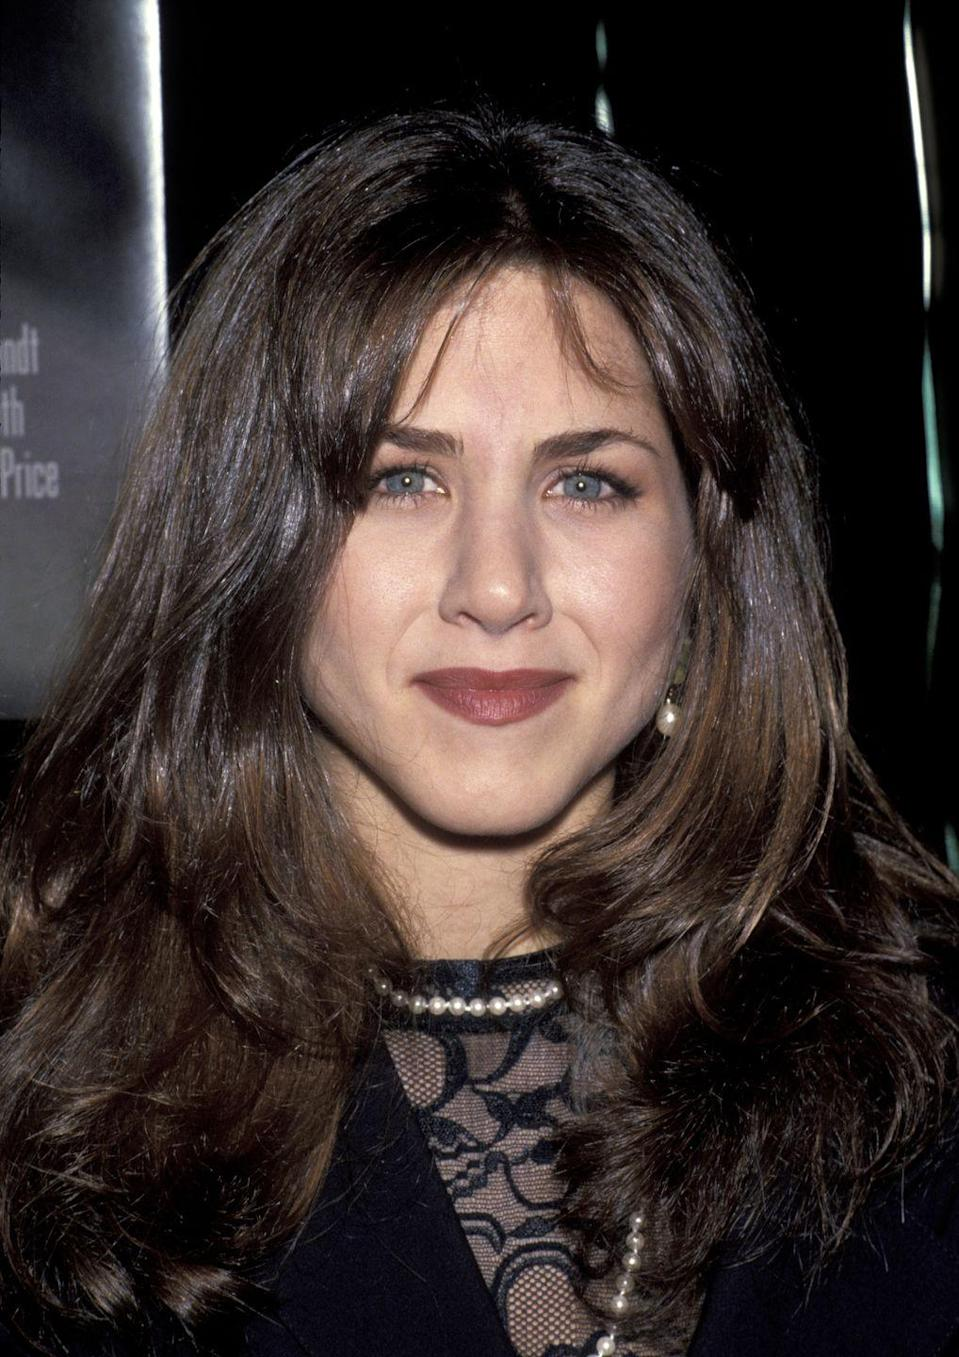 <p>Every good actor has likely starred in a really campy B-horror film. For Jennifer, that was <em>Leprechaun</em>. This photo was snapped in 1992 at the premiere, and the darker tones definitely aid in that scary movie feel.<br></p>